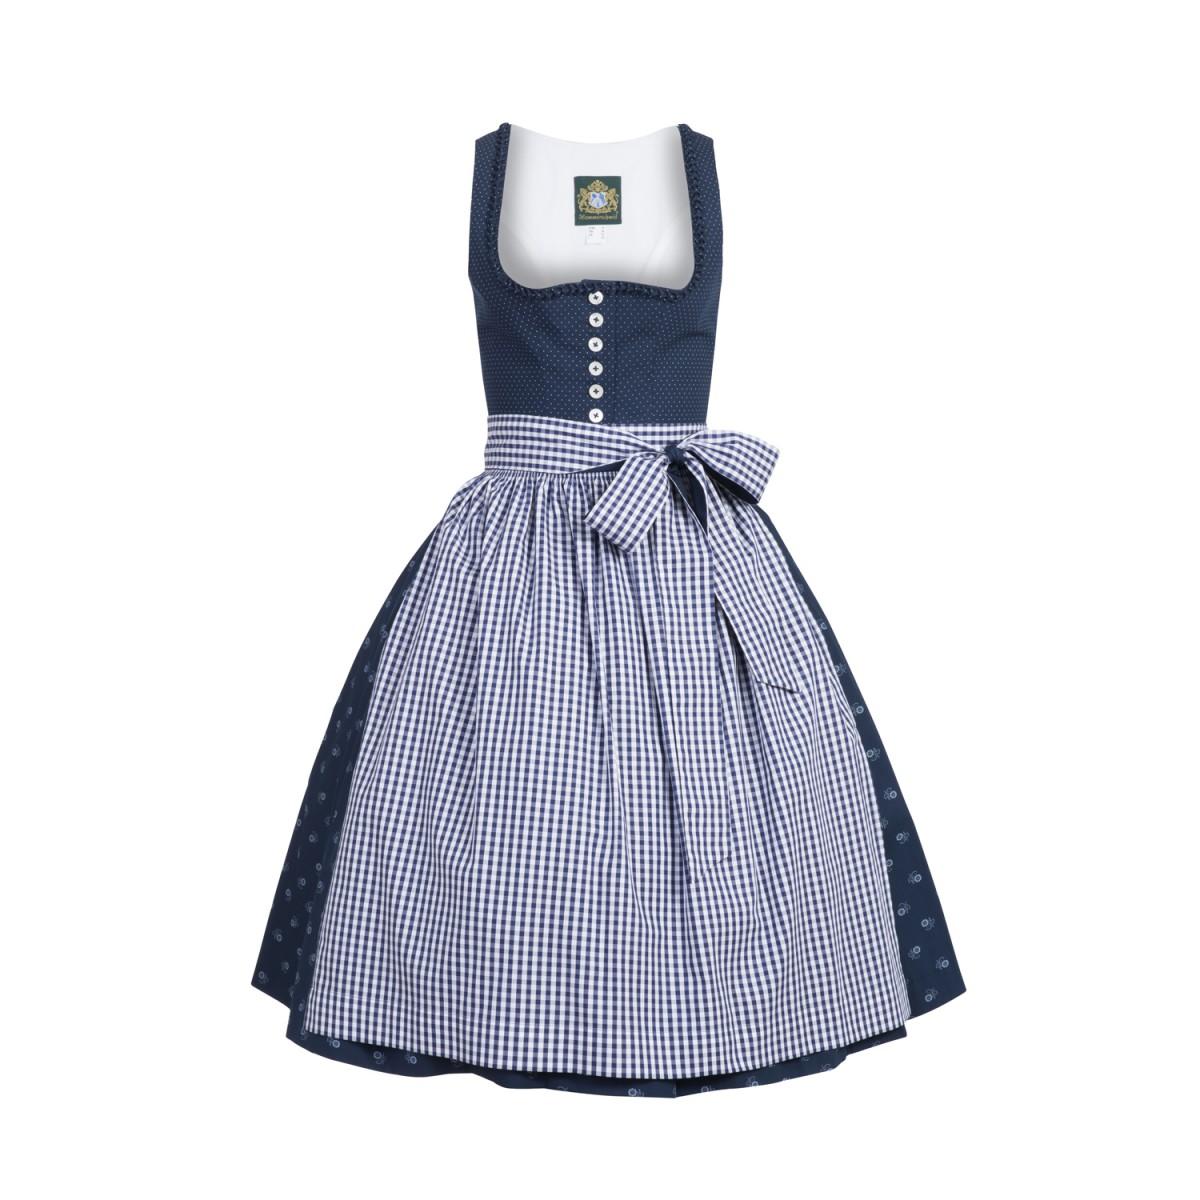 midi dirndl pillersee in blau von hammerschmid ebay. Black Bedroom Furniture Sets. Home Design Ideas